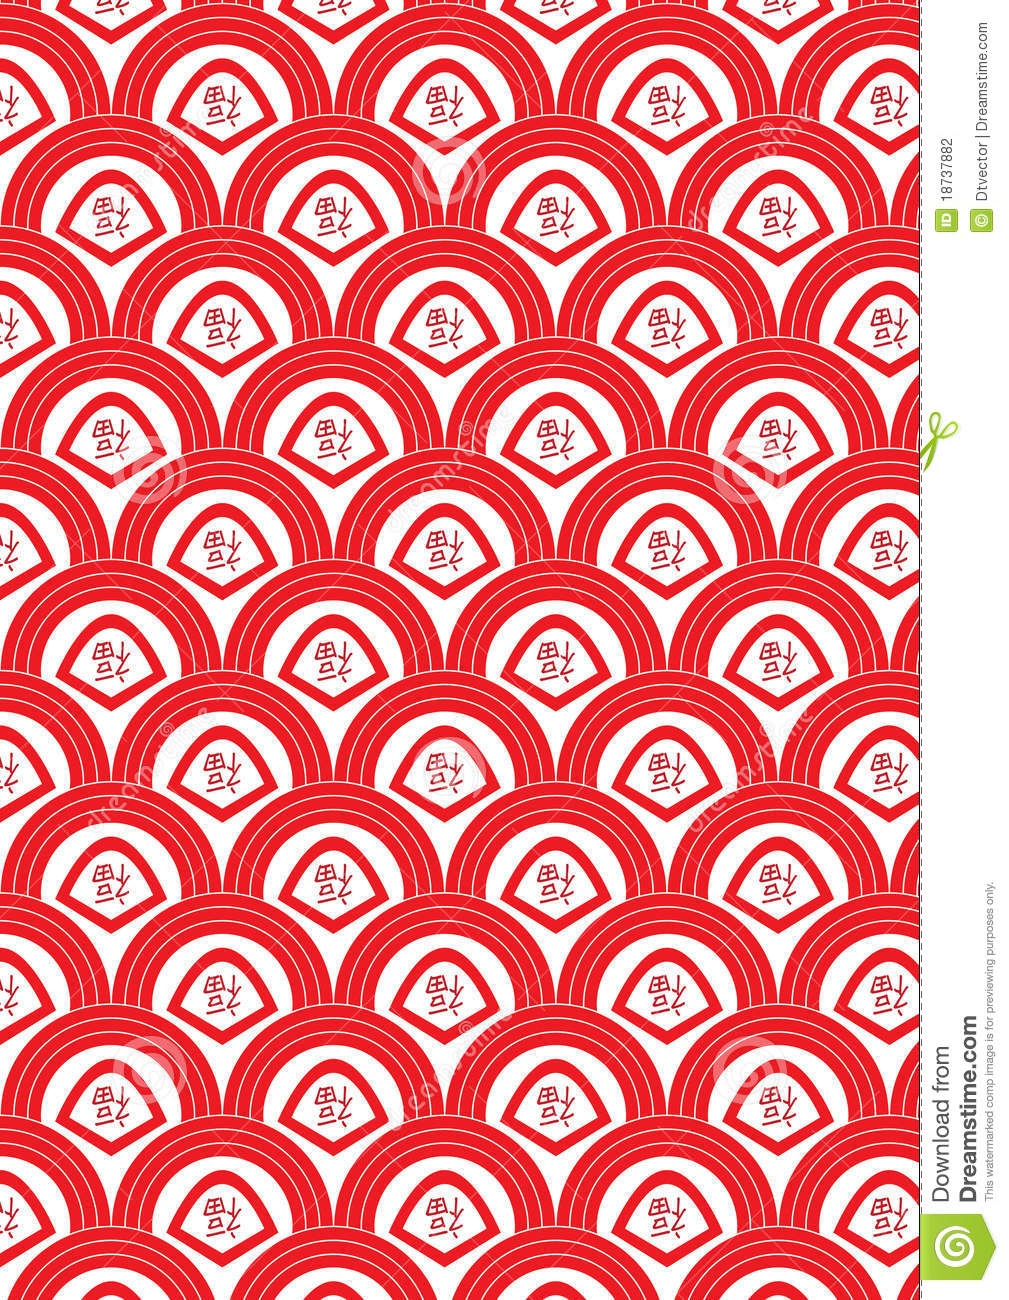 Stock Photography Half Circle Red Fortune Seamless Pattern Eps Image18737882 on file symbol thumbs up color